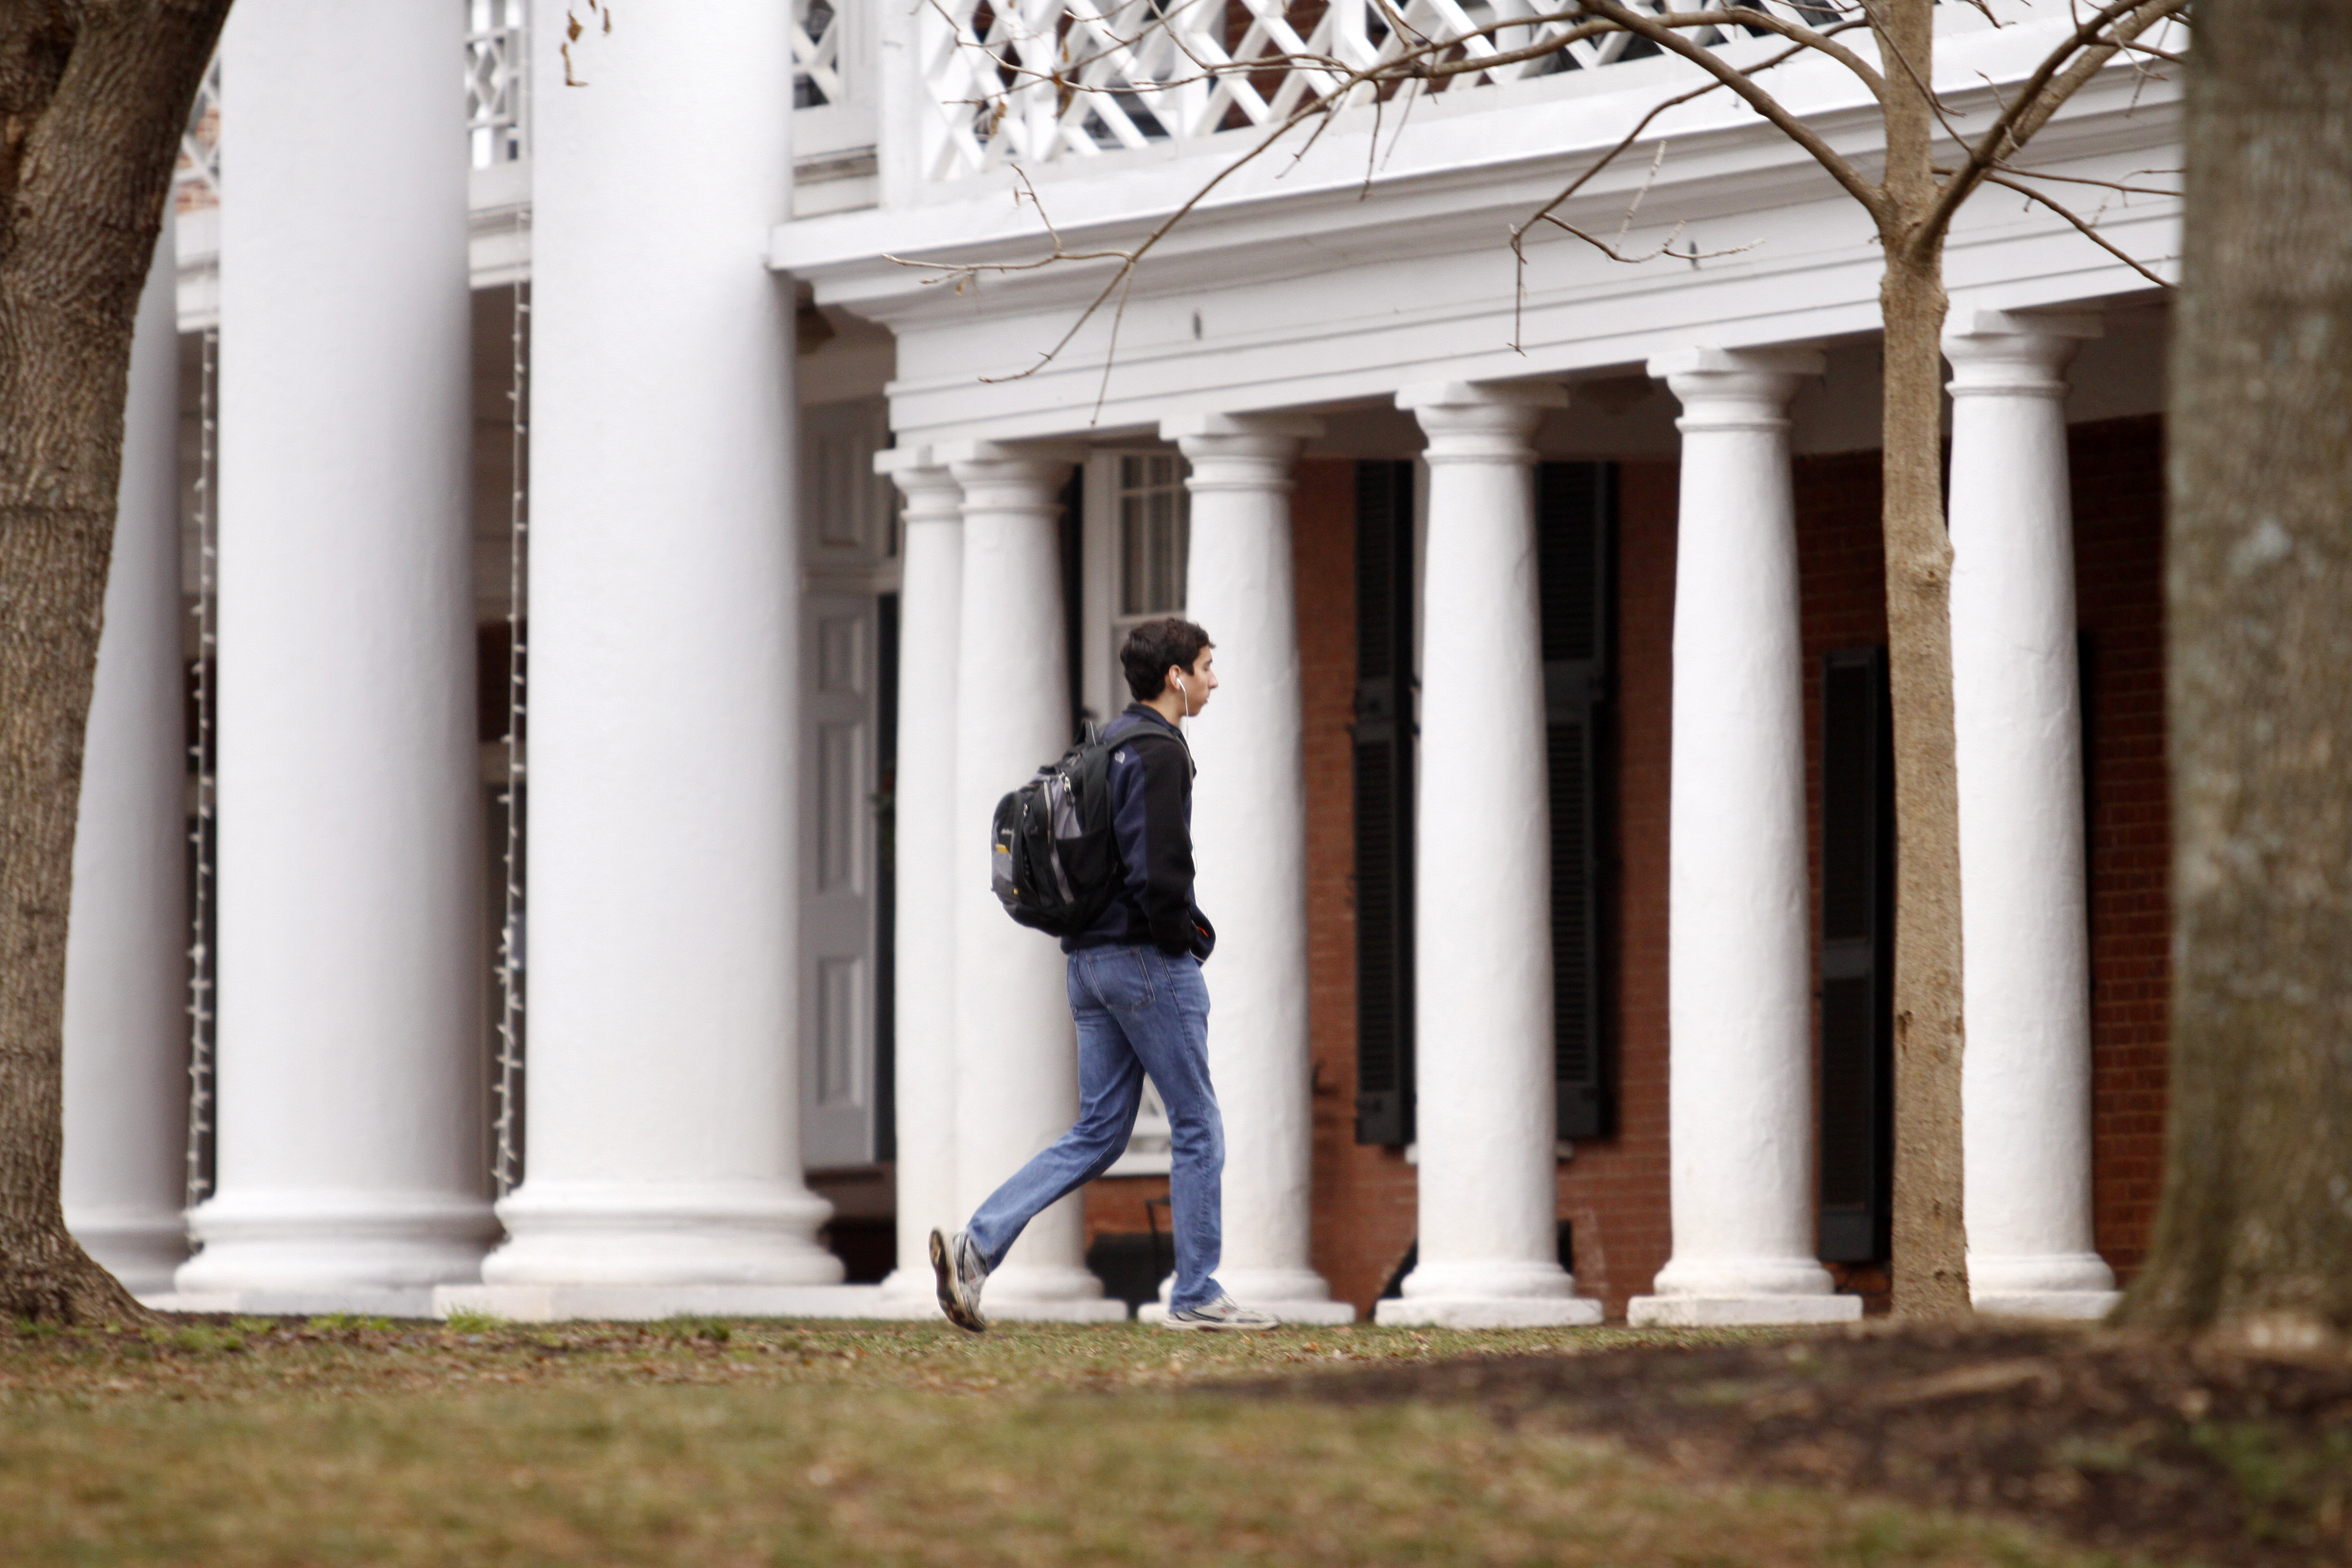 Rolling Stone magazine issued an apology for discrepencies that were published in an article regarding the alleged gang rape of a University of Virginia student by members of the Phi Kappa Psi fraternity.